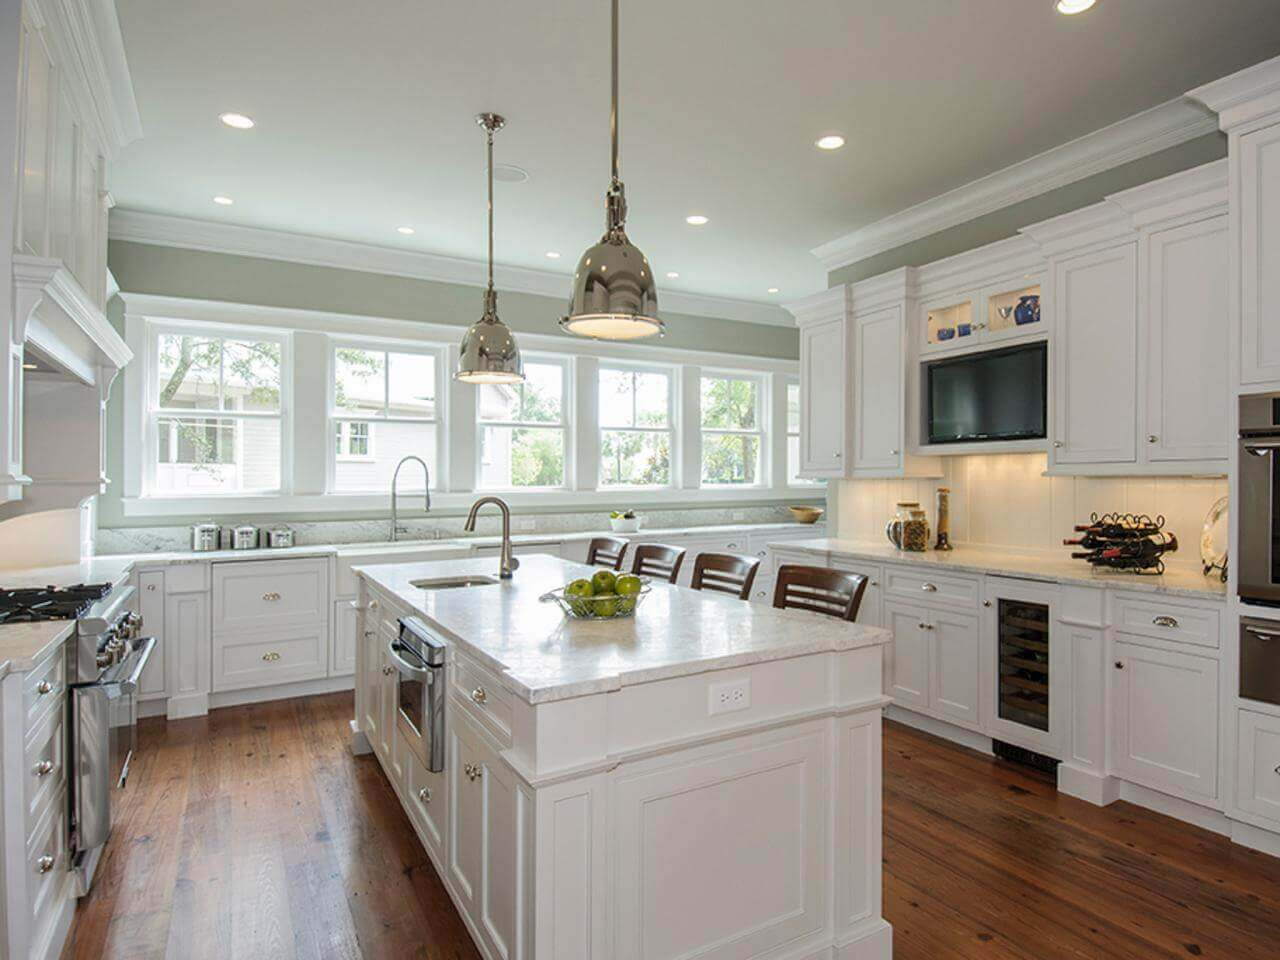 Crisp white kitchen with white walls, ceiling and cabinets! The white custom kitchen island at the center of the kitchen helps to draw the eye down to the wooden floor that balances out the feel of the entire space